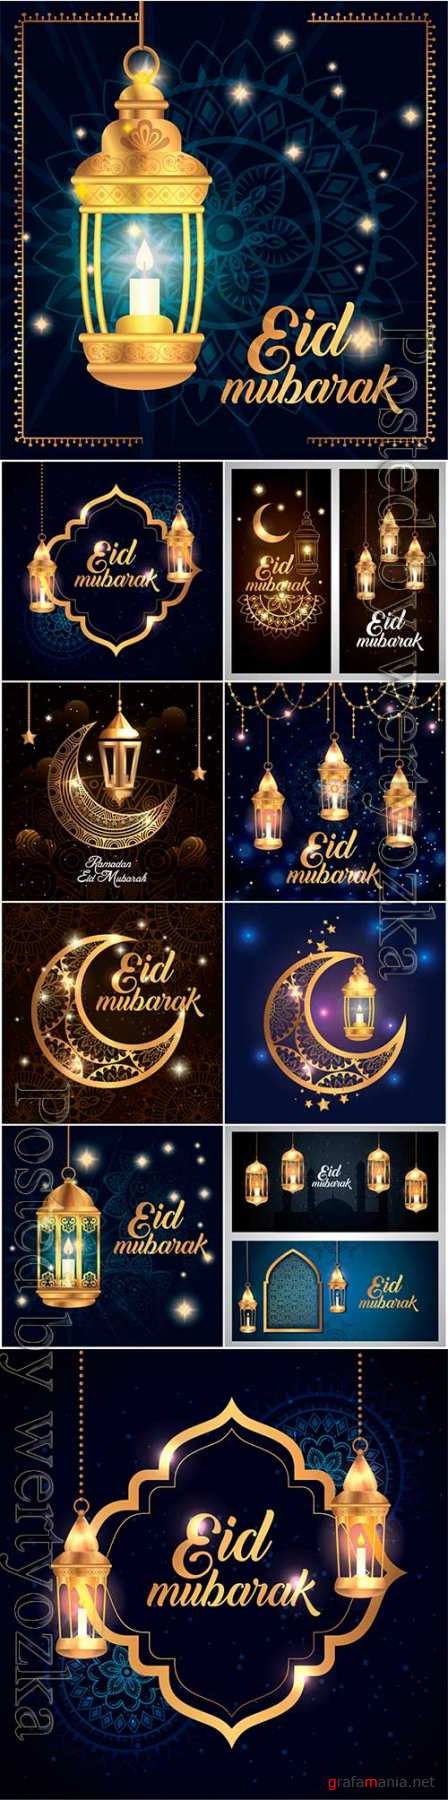 Eid mubarak poster with lantern hanging and decoration vector illustration